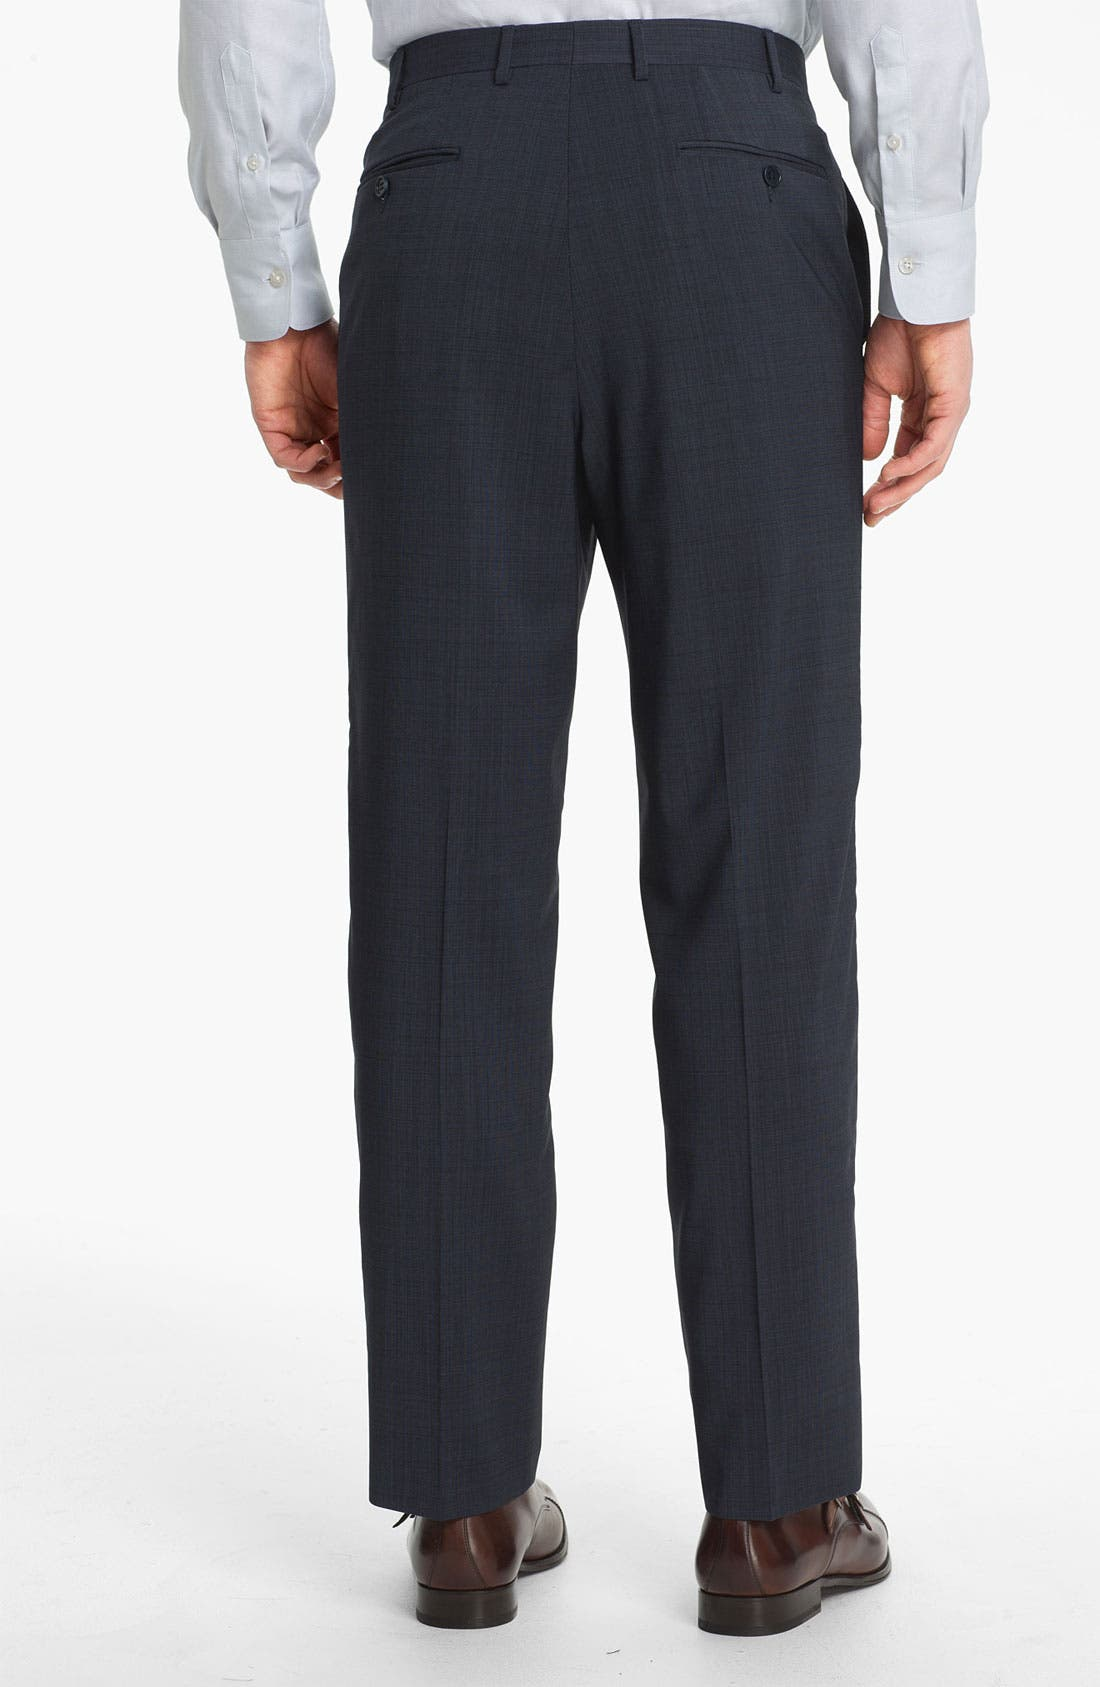 CANALI, Flat Front Wool Trousers, Alternate thumbnail 2, color, BLUE